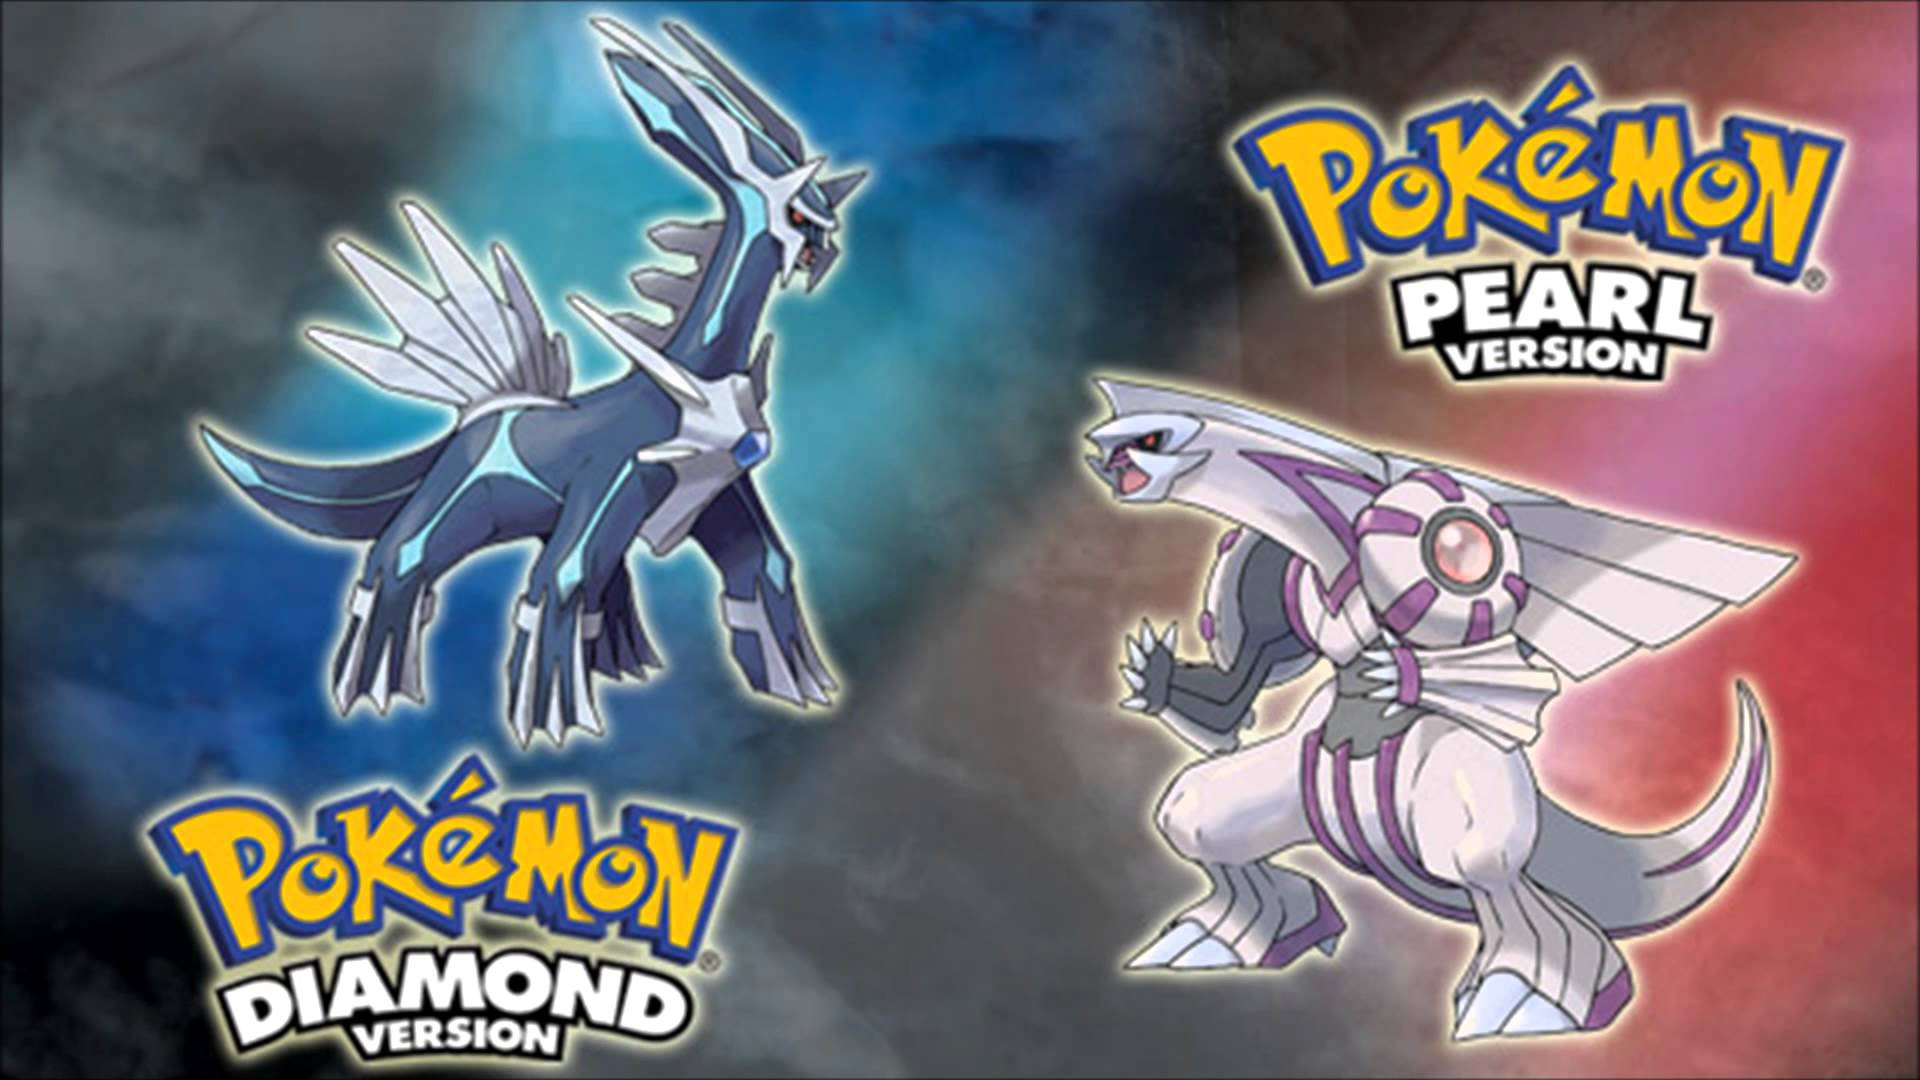 are you a true poke-master? test your knowledge of diamond and pearl